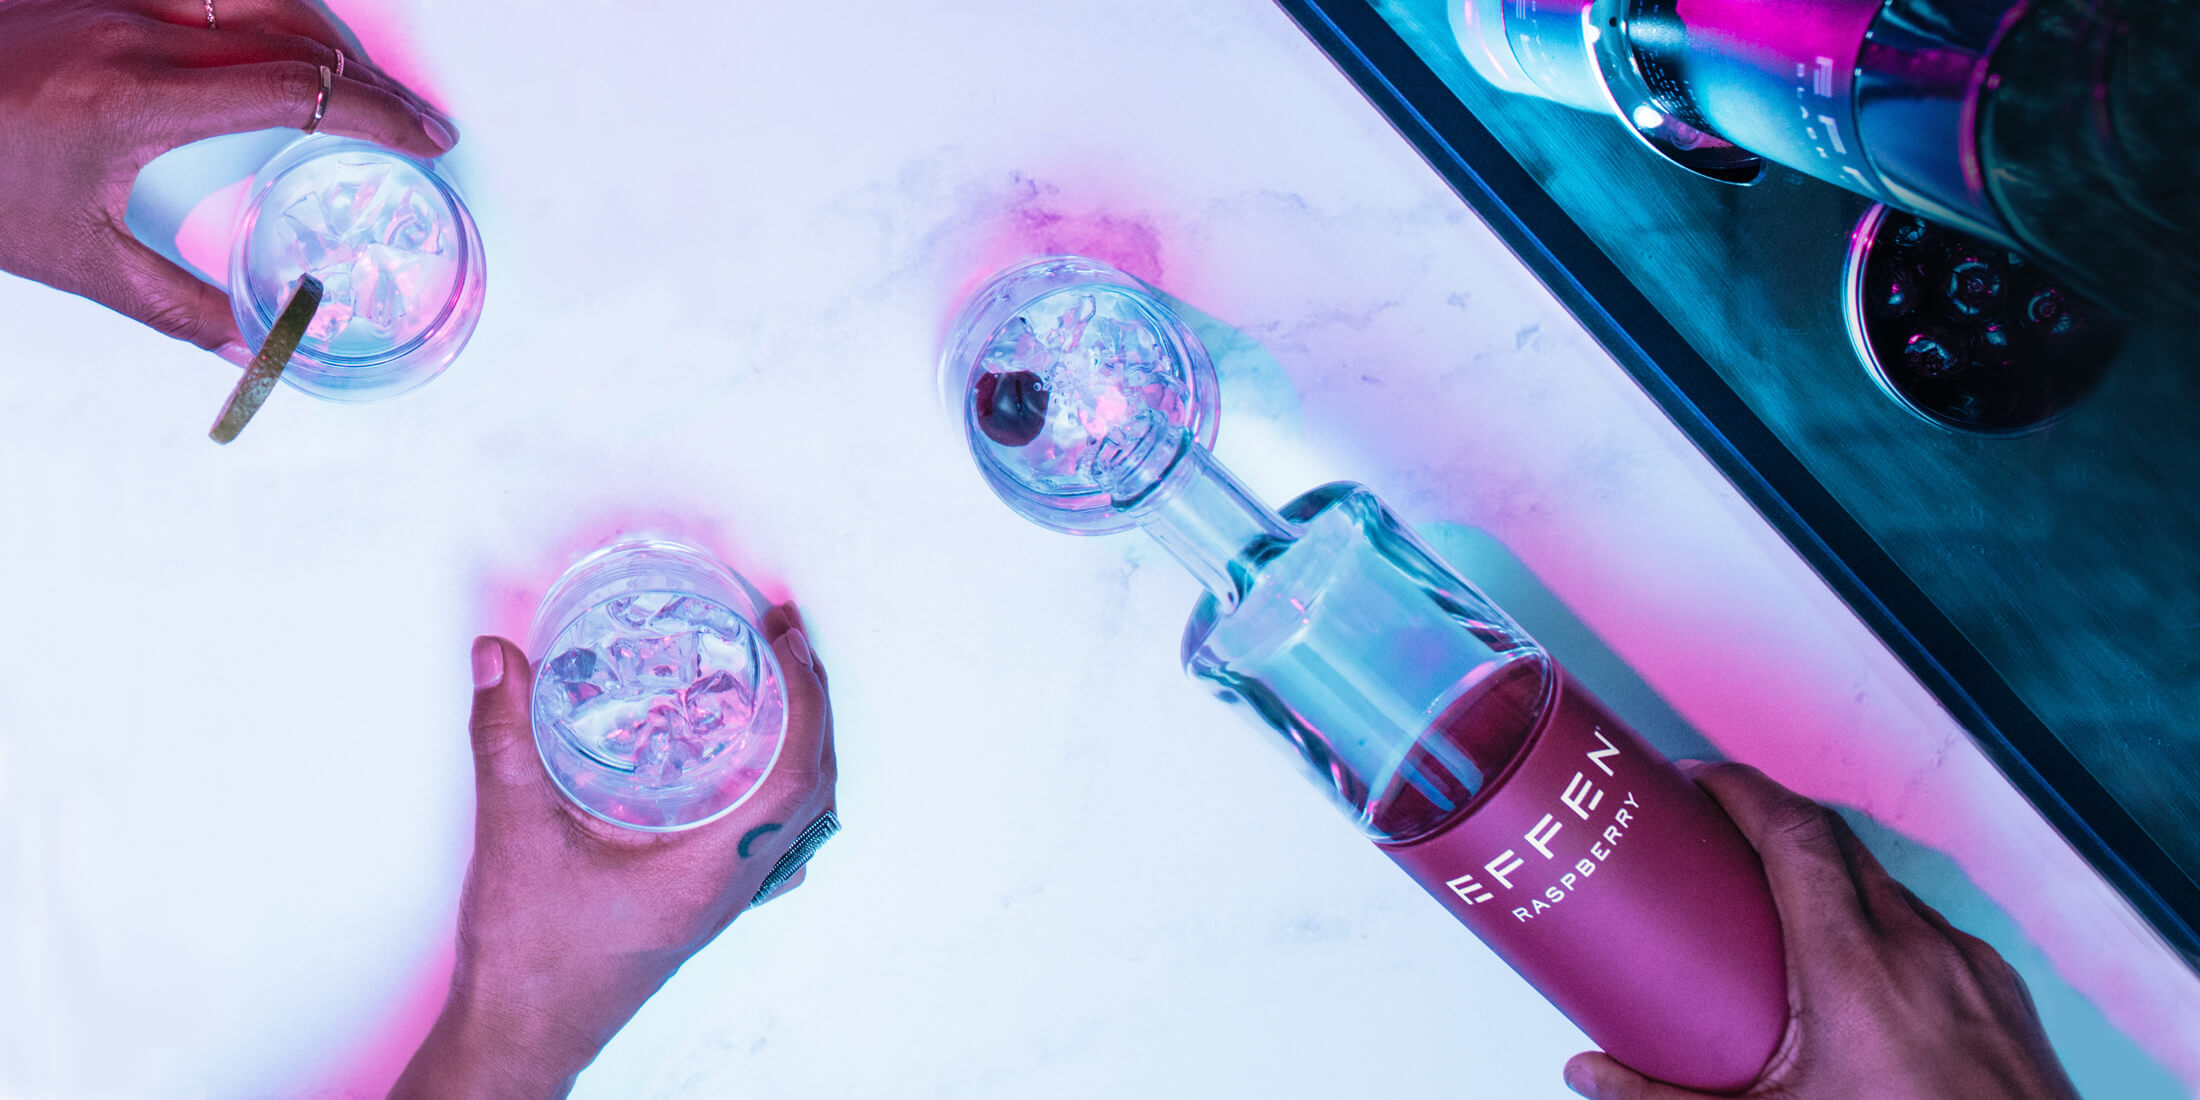 Rasperry vodka by EFFEN is the right drink for every occassion.